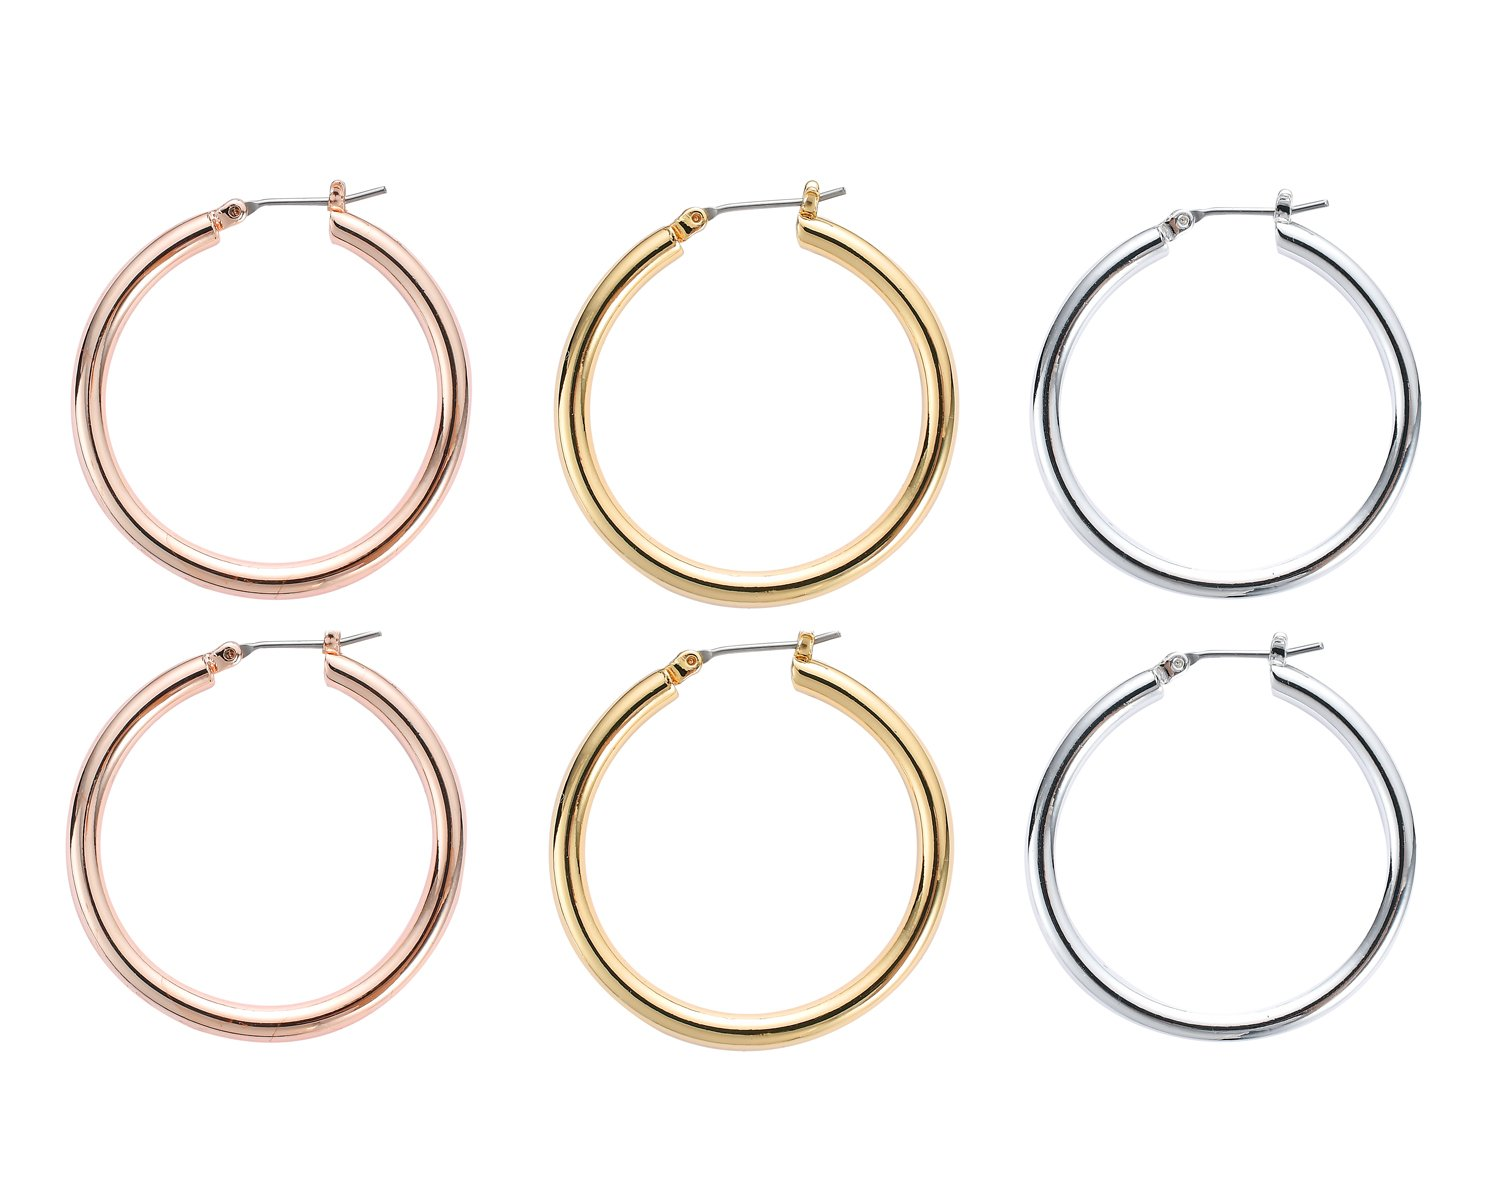 Concise Royal 35mm Large Classical High Polished Round Click-Top Hoop Earring Set of Rose Gold Silver Shinny Gold 3 Pairs